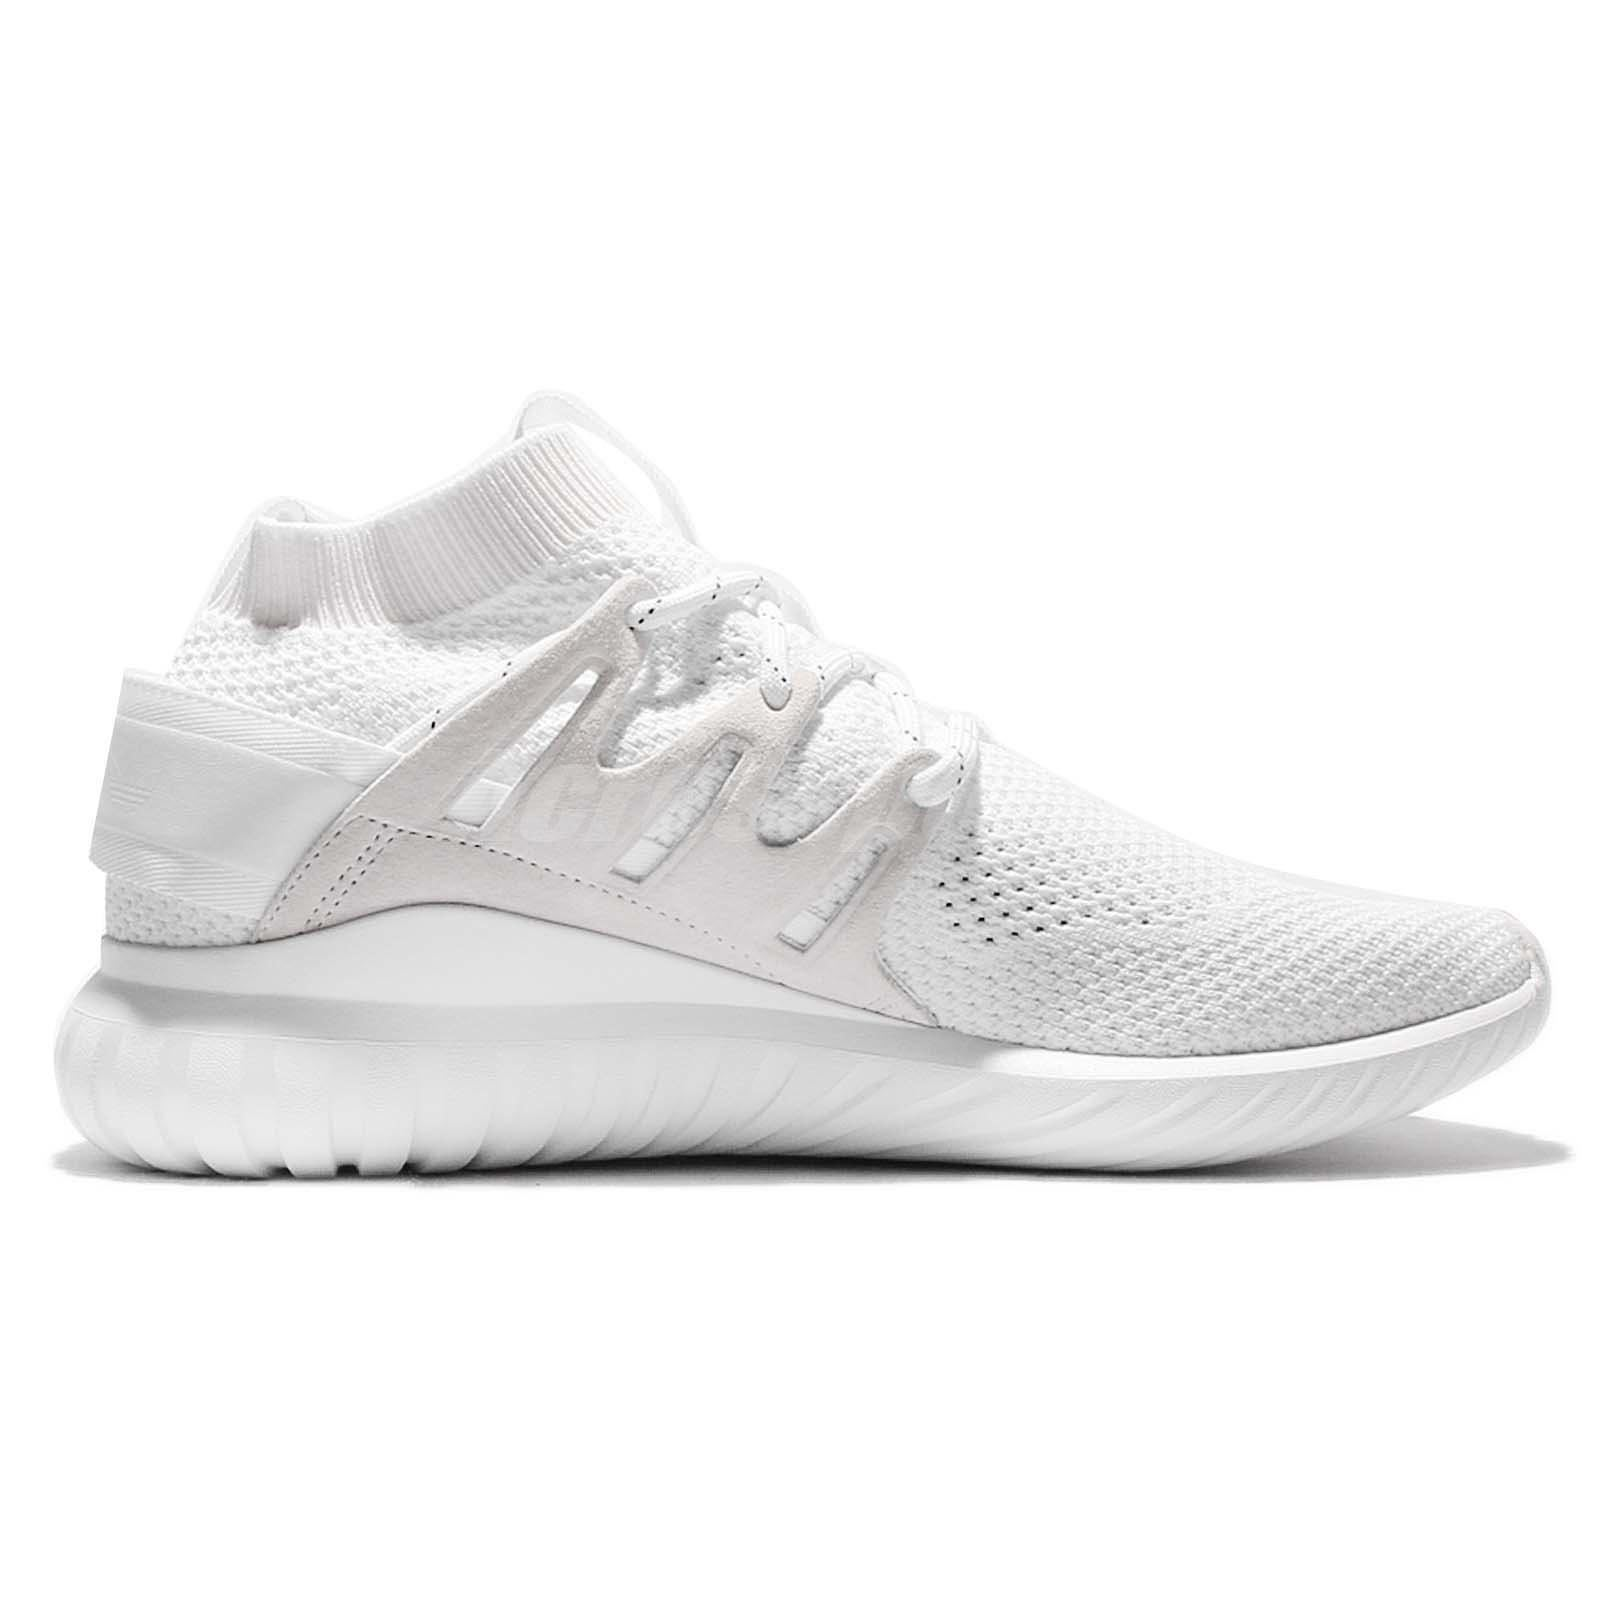 adidas Tubular Nova PrimeKnit Mens Trainers~Originals~3 Colours; Picture 2  of 8 ...